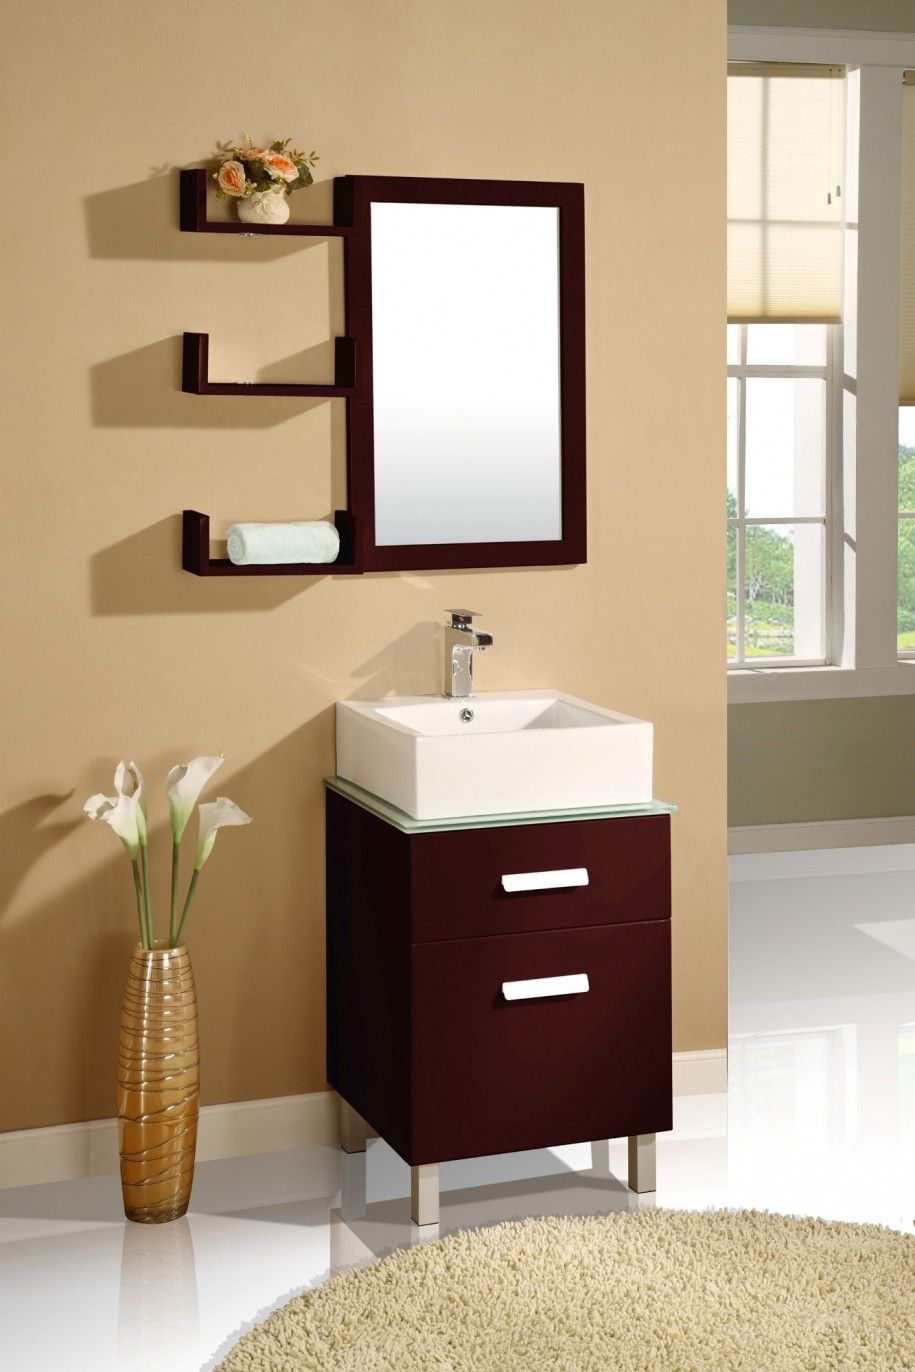 Simple dark wood bathroom mirrors with shelves and small dark wood vanity cabinet and white wash Mirror design for small bathroom